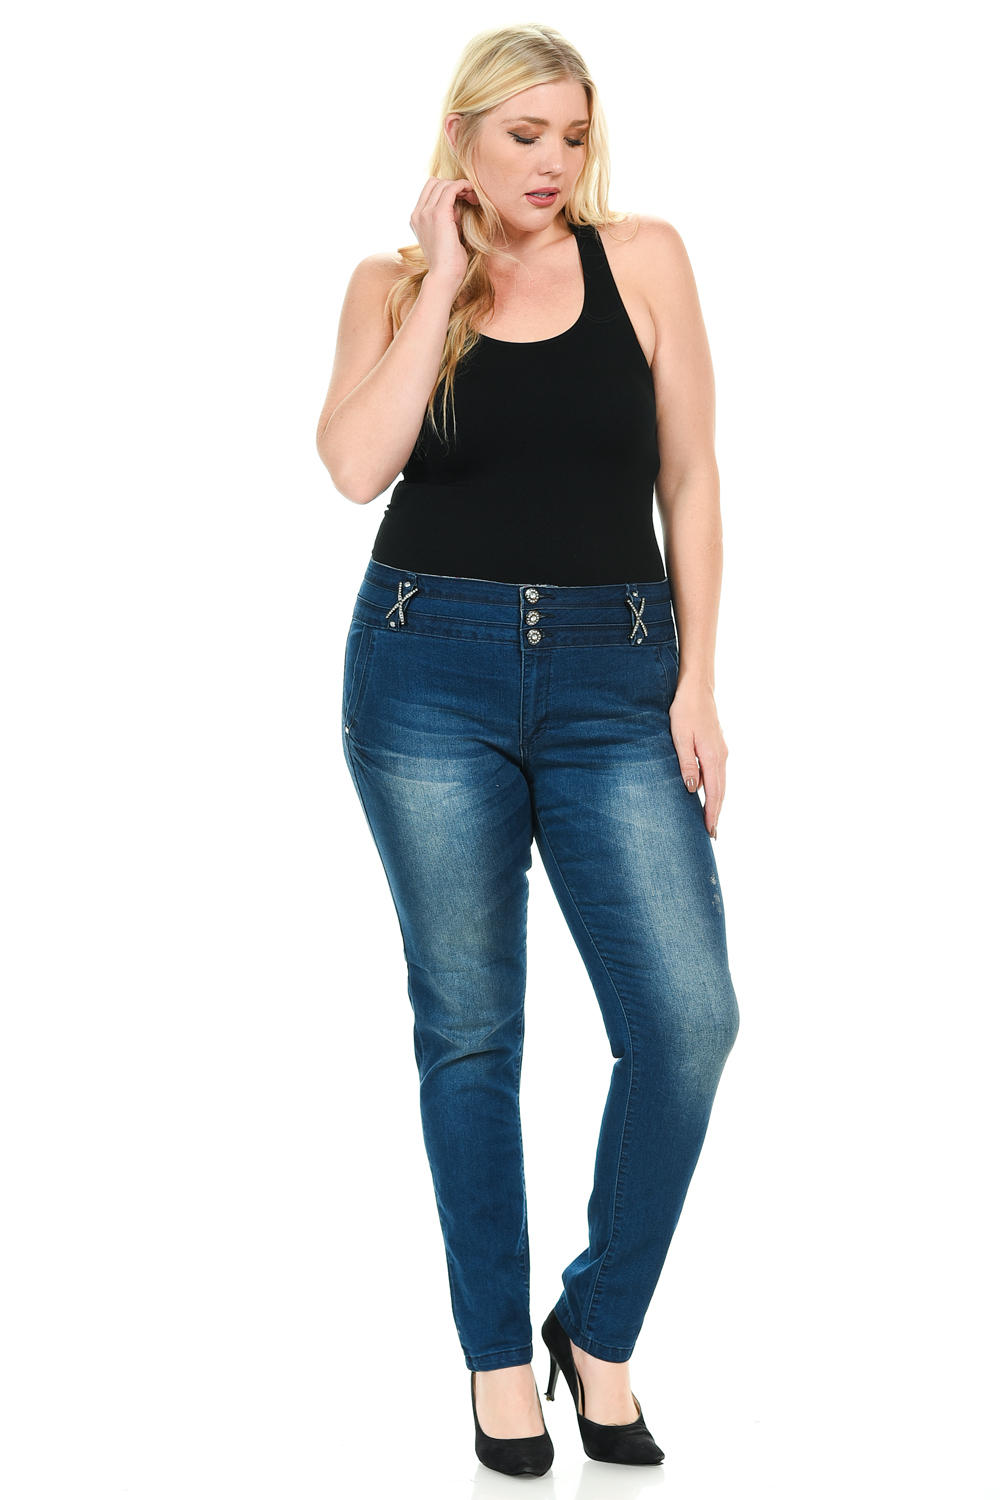 Sweet Look Women's Jeans - Plus Size - High Waist - Push Up - Style 001